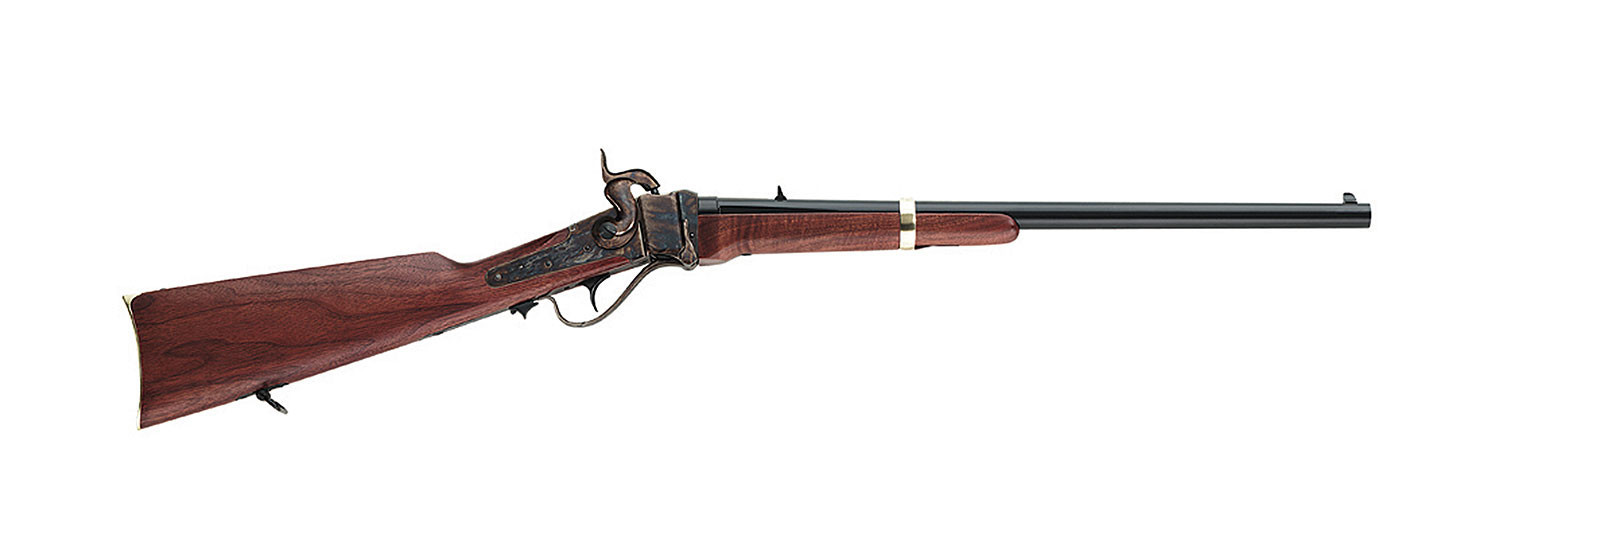 1862 Sharps Confederate Carabine 22""